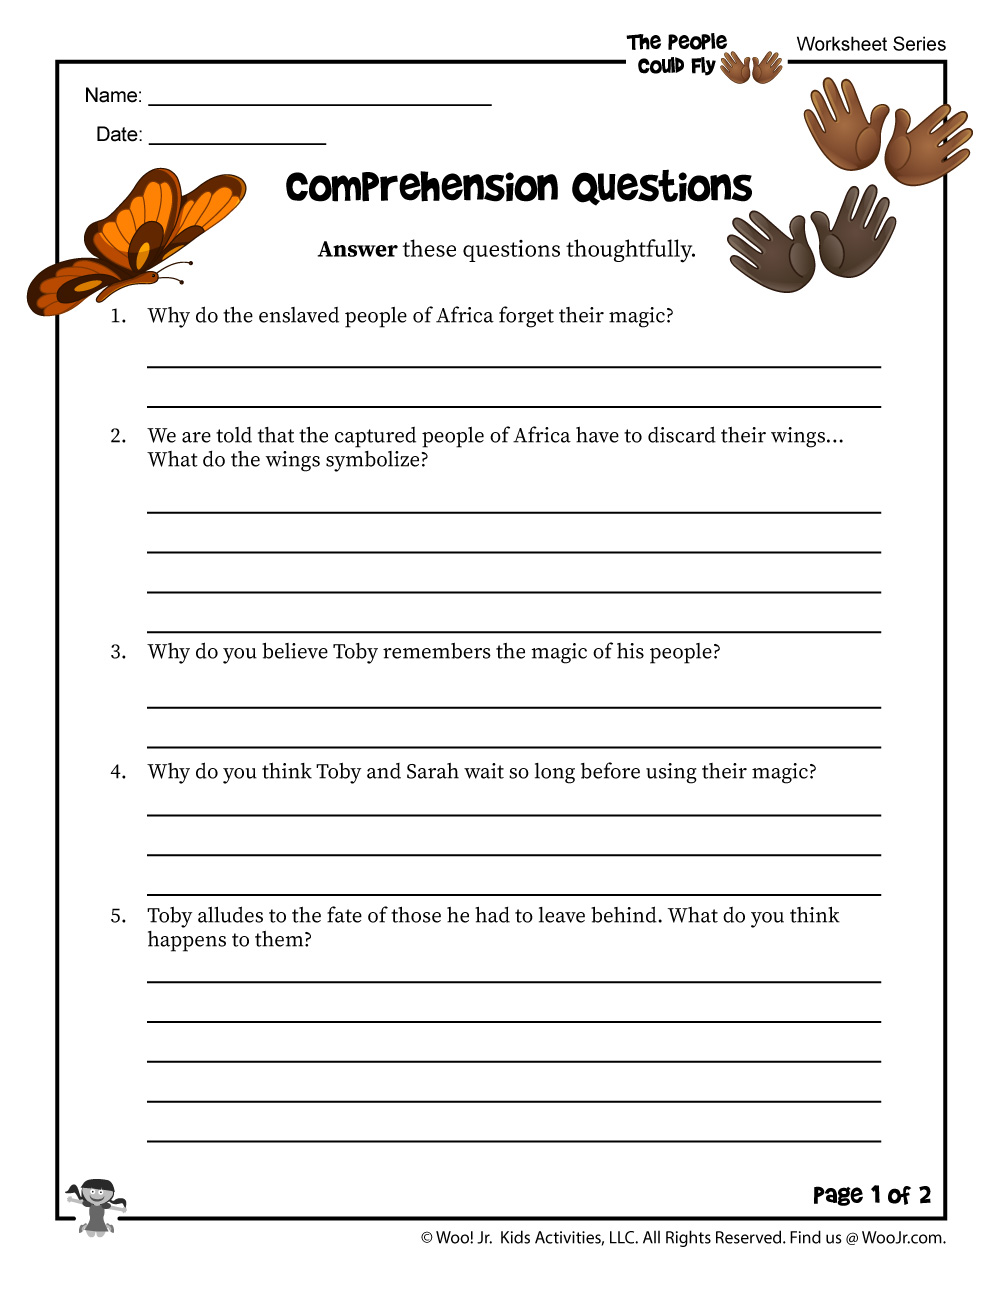 - The People Could Fly Comprehension Questions Worksheet Part 1